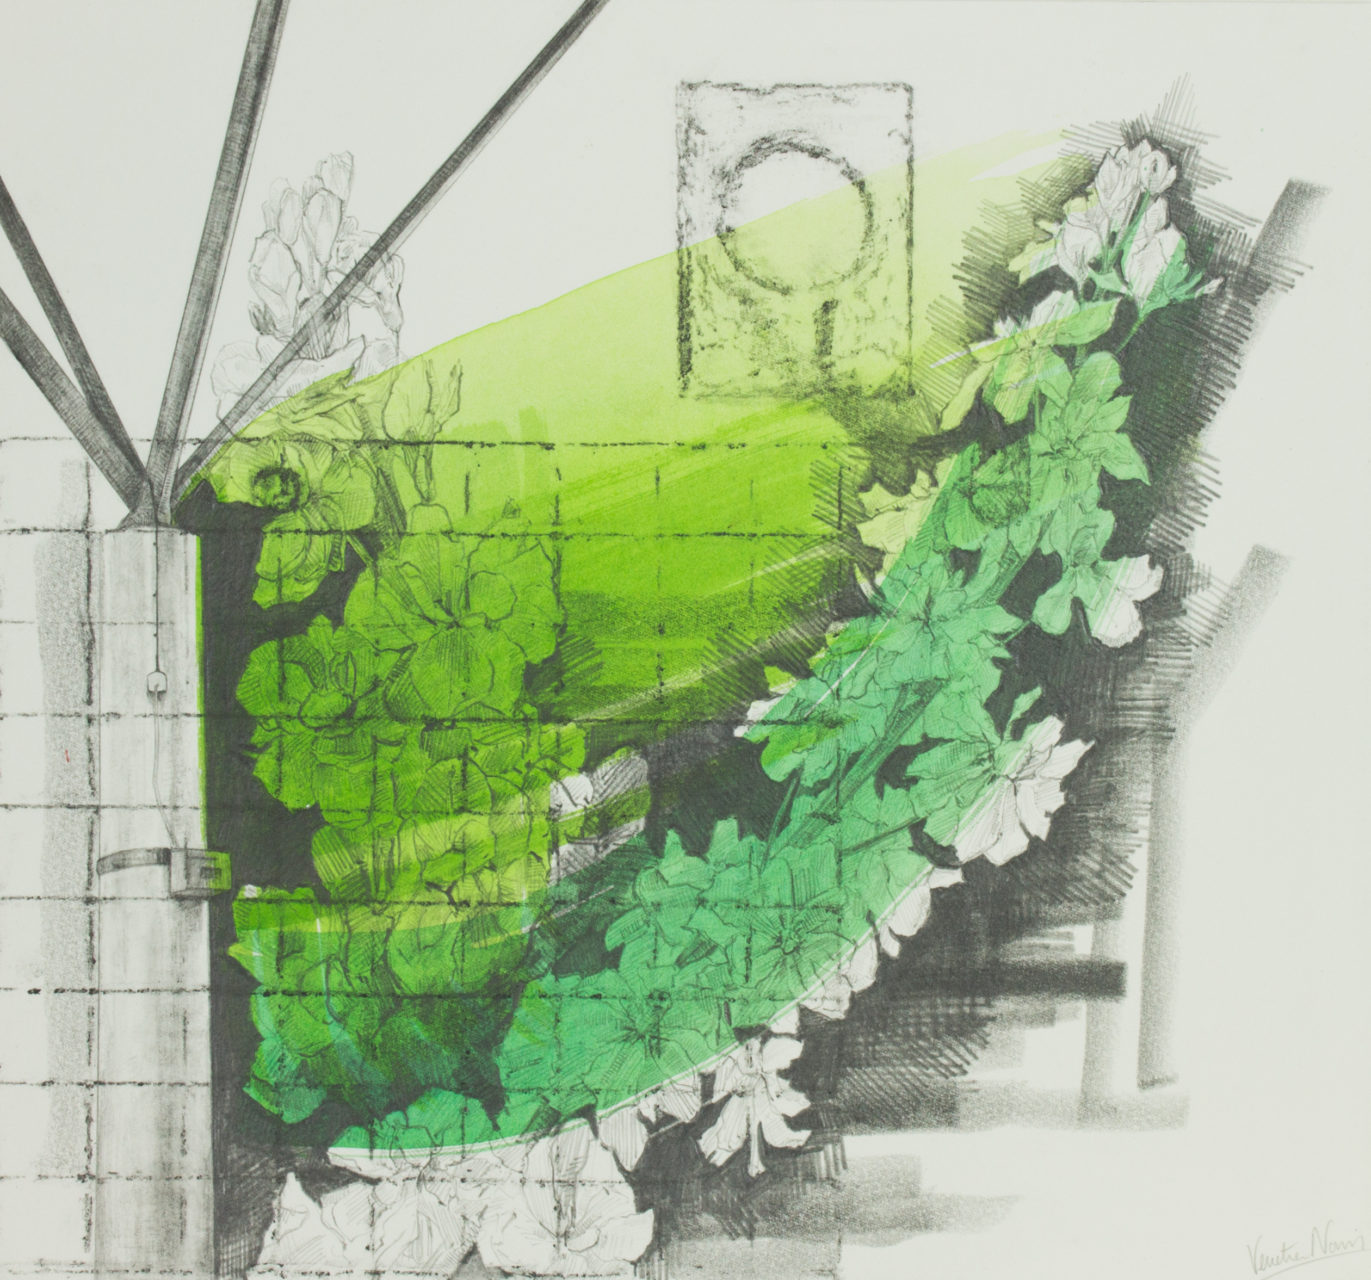 Green and twiggy, graphite and paint on board, 35.4 x 38.2 cm, sold